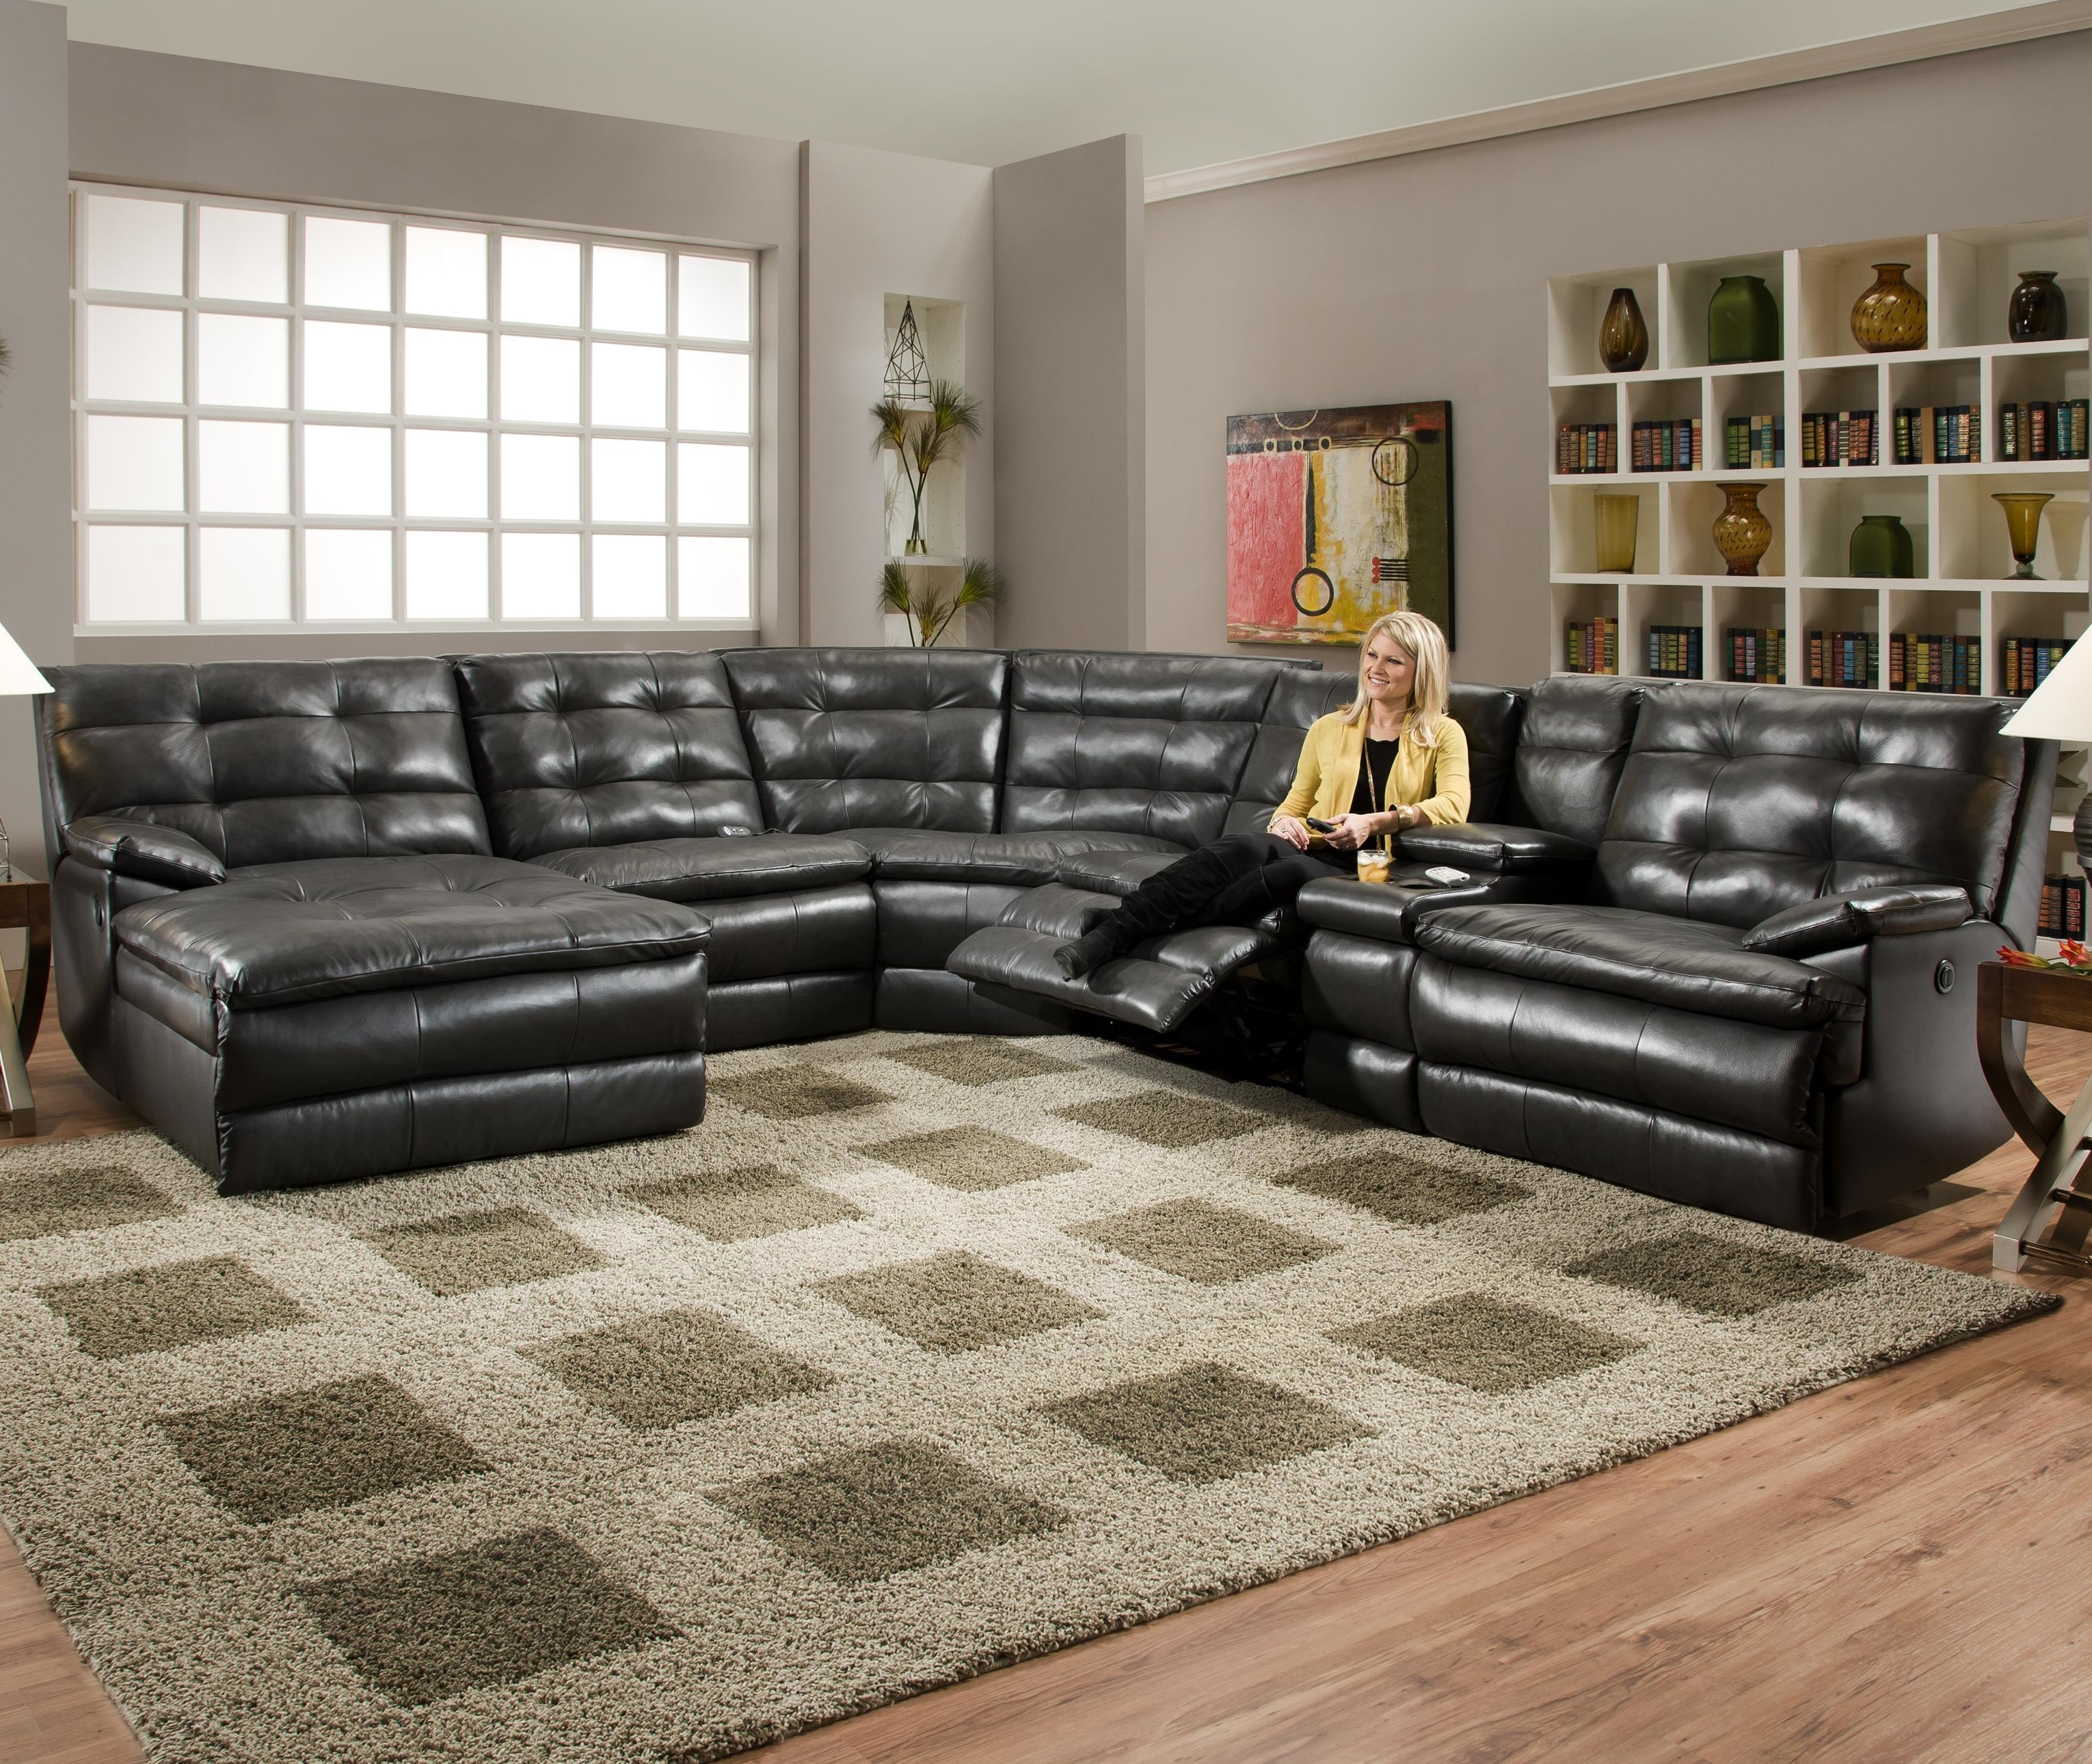 Luxurious Tufted Leather Sectional Sofa In Classy Black Color With Throughout Current Sectional Sofas In Stock (View 3 of 20)